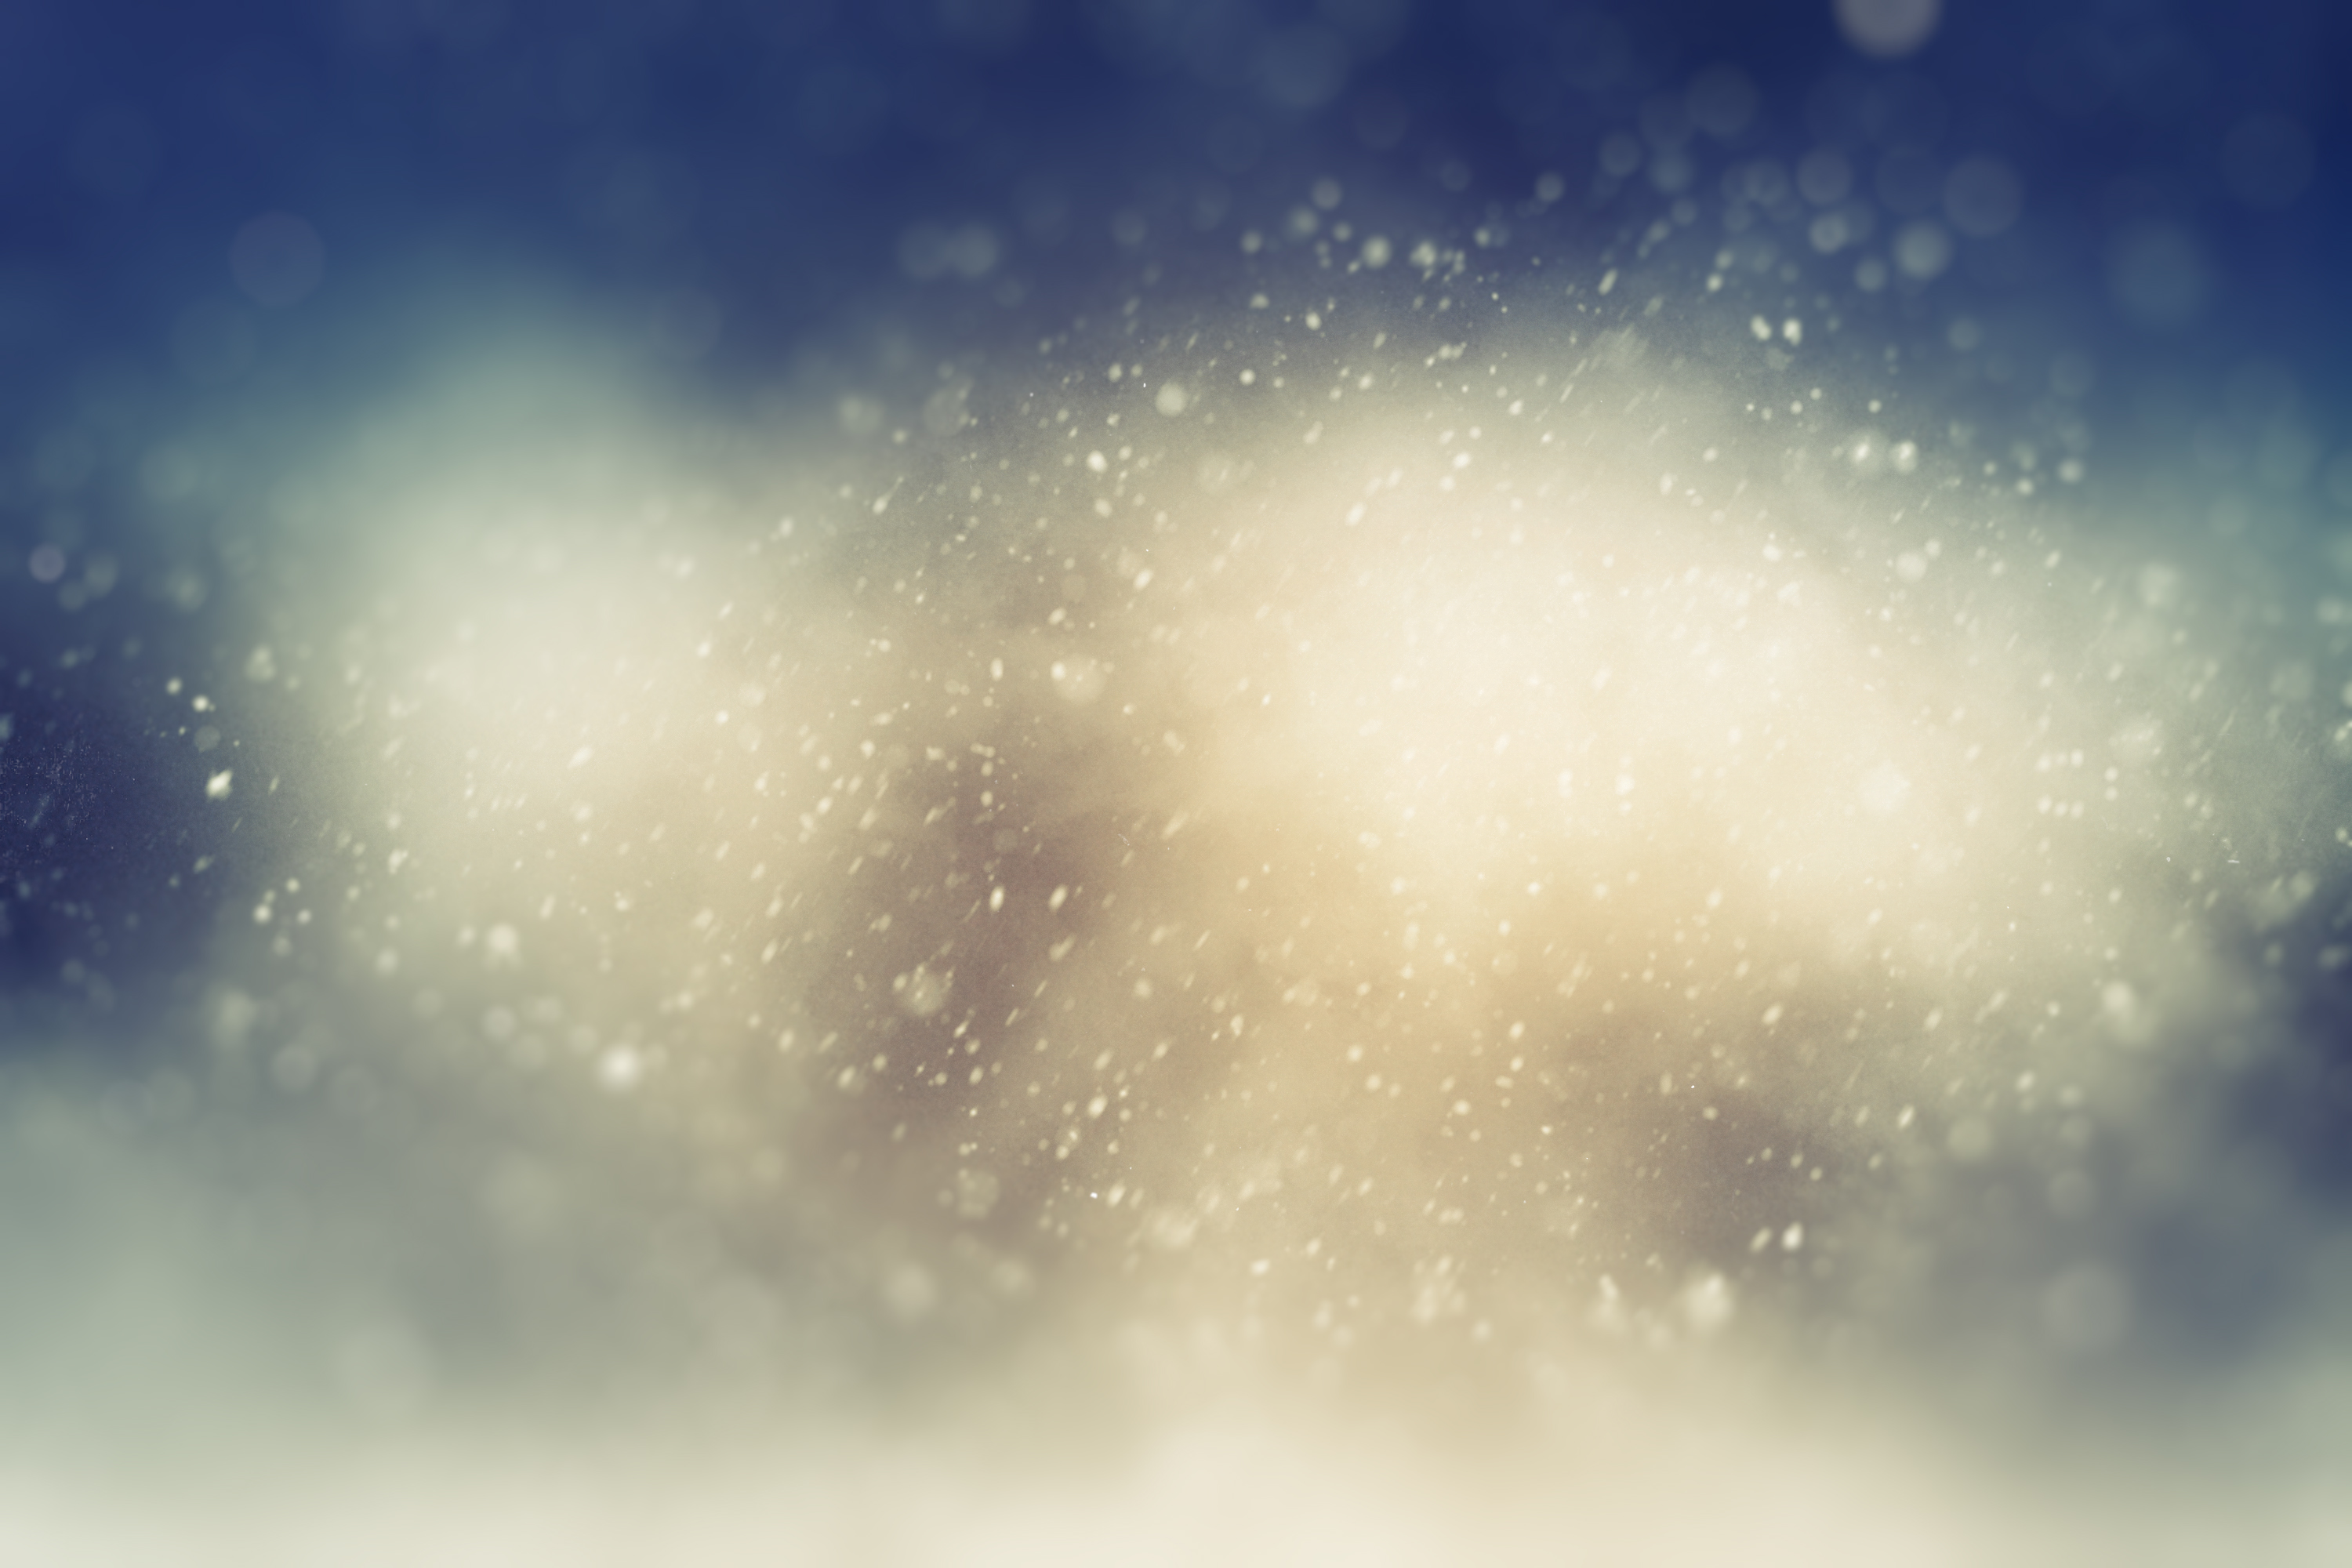 Fantasy sly snowflake background 54416